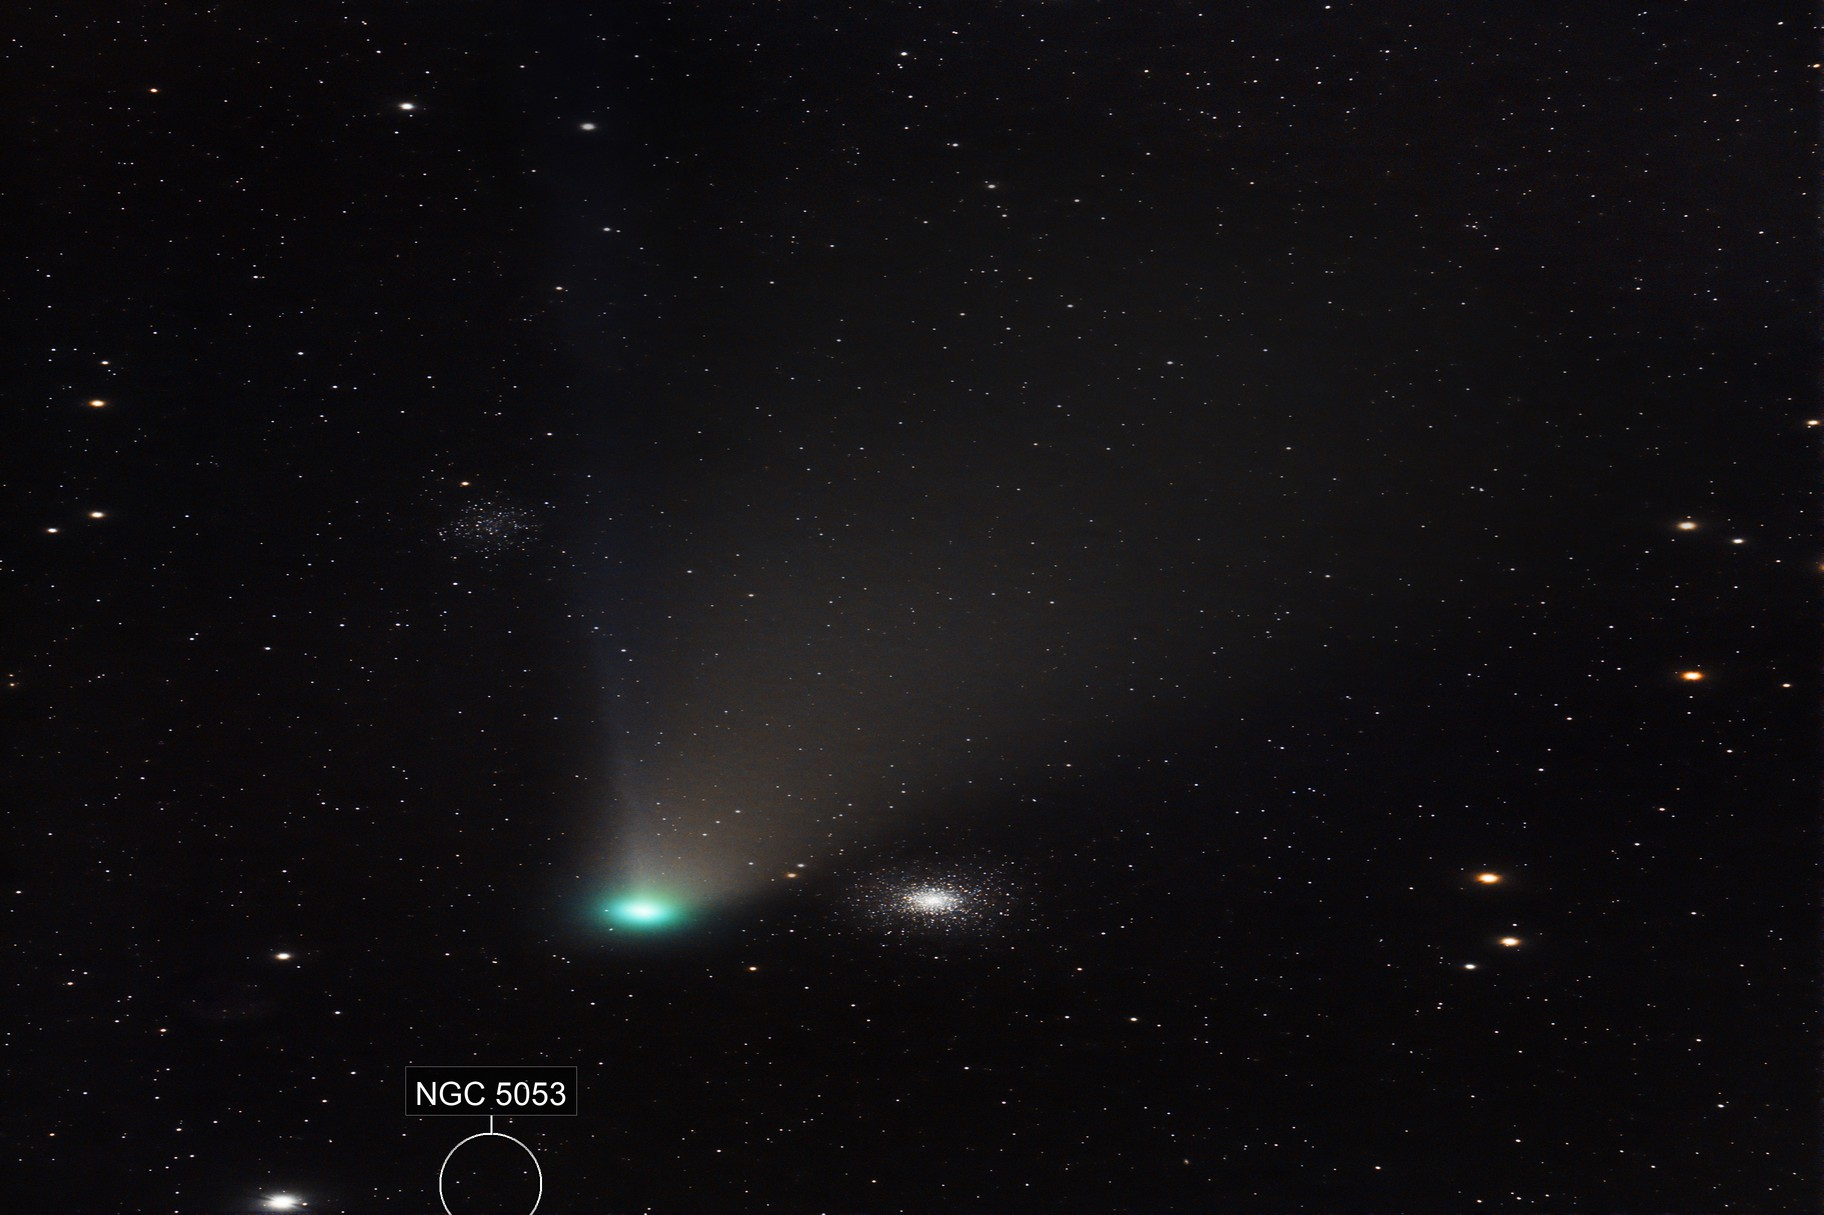 Comet Neowise with M53 and NGC5053